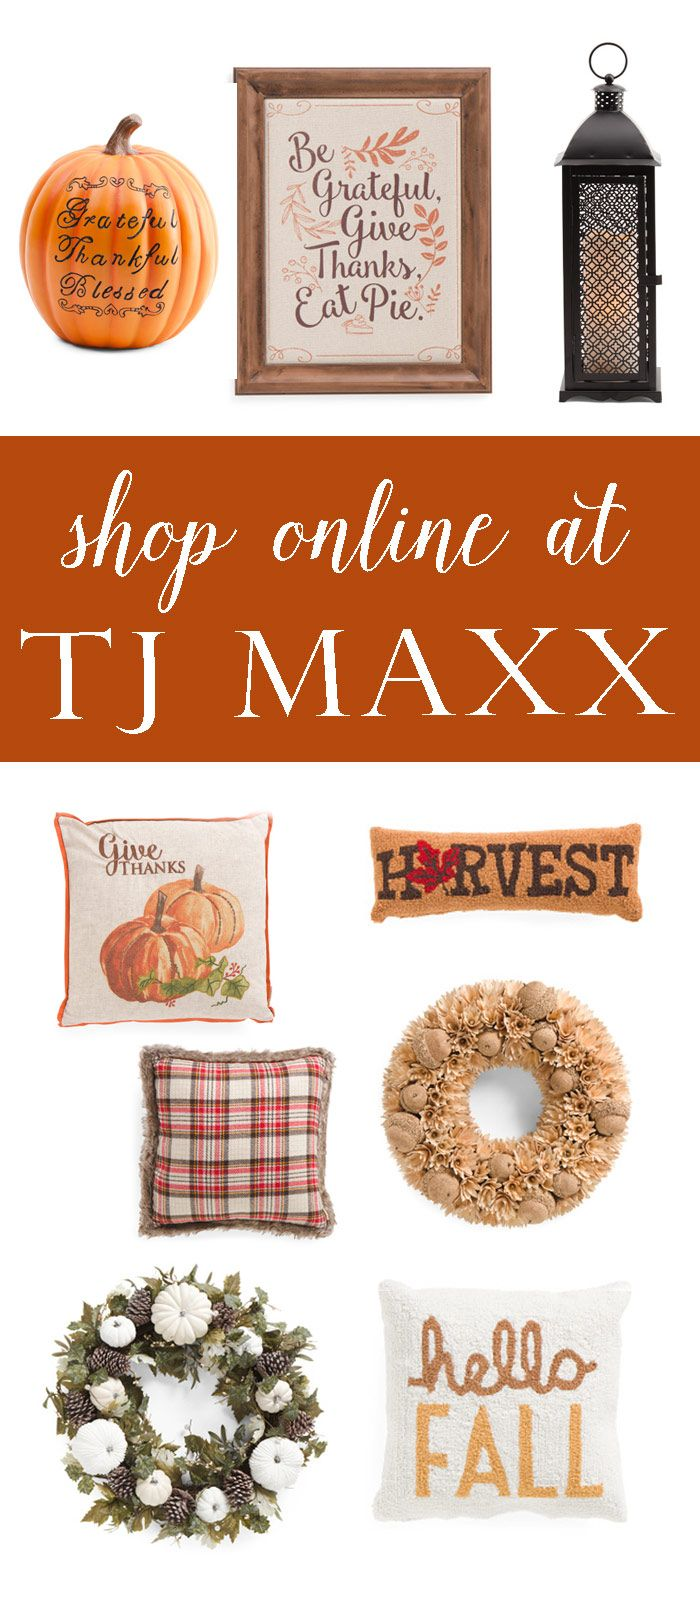 What the what? You can now score those awesome deals from TJ Maxx ONLINE! Don't you hate it when you go to TJ Maxx only to find out the cool fall pillow you wanted is sold out? Now you can shop online from the comfort of your couch (aff link)